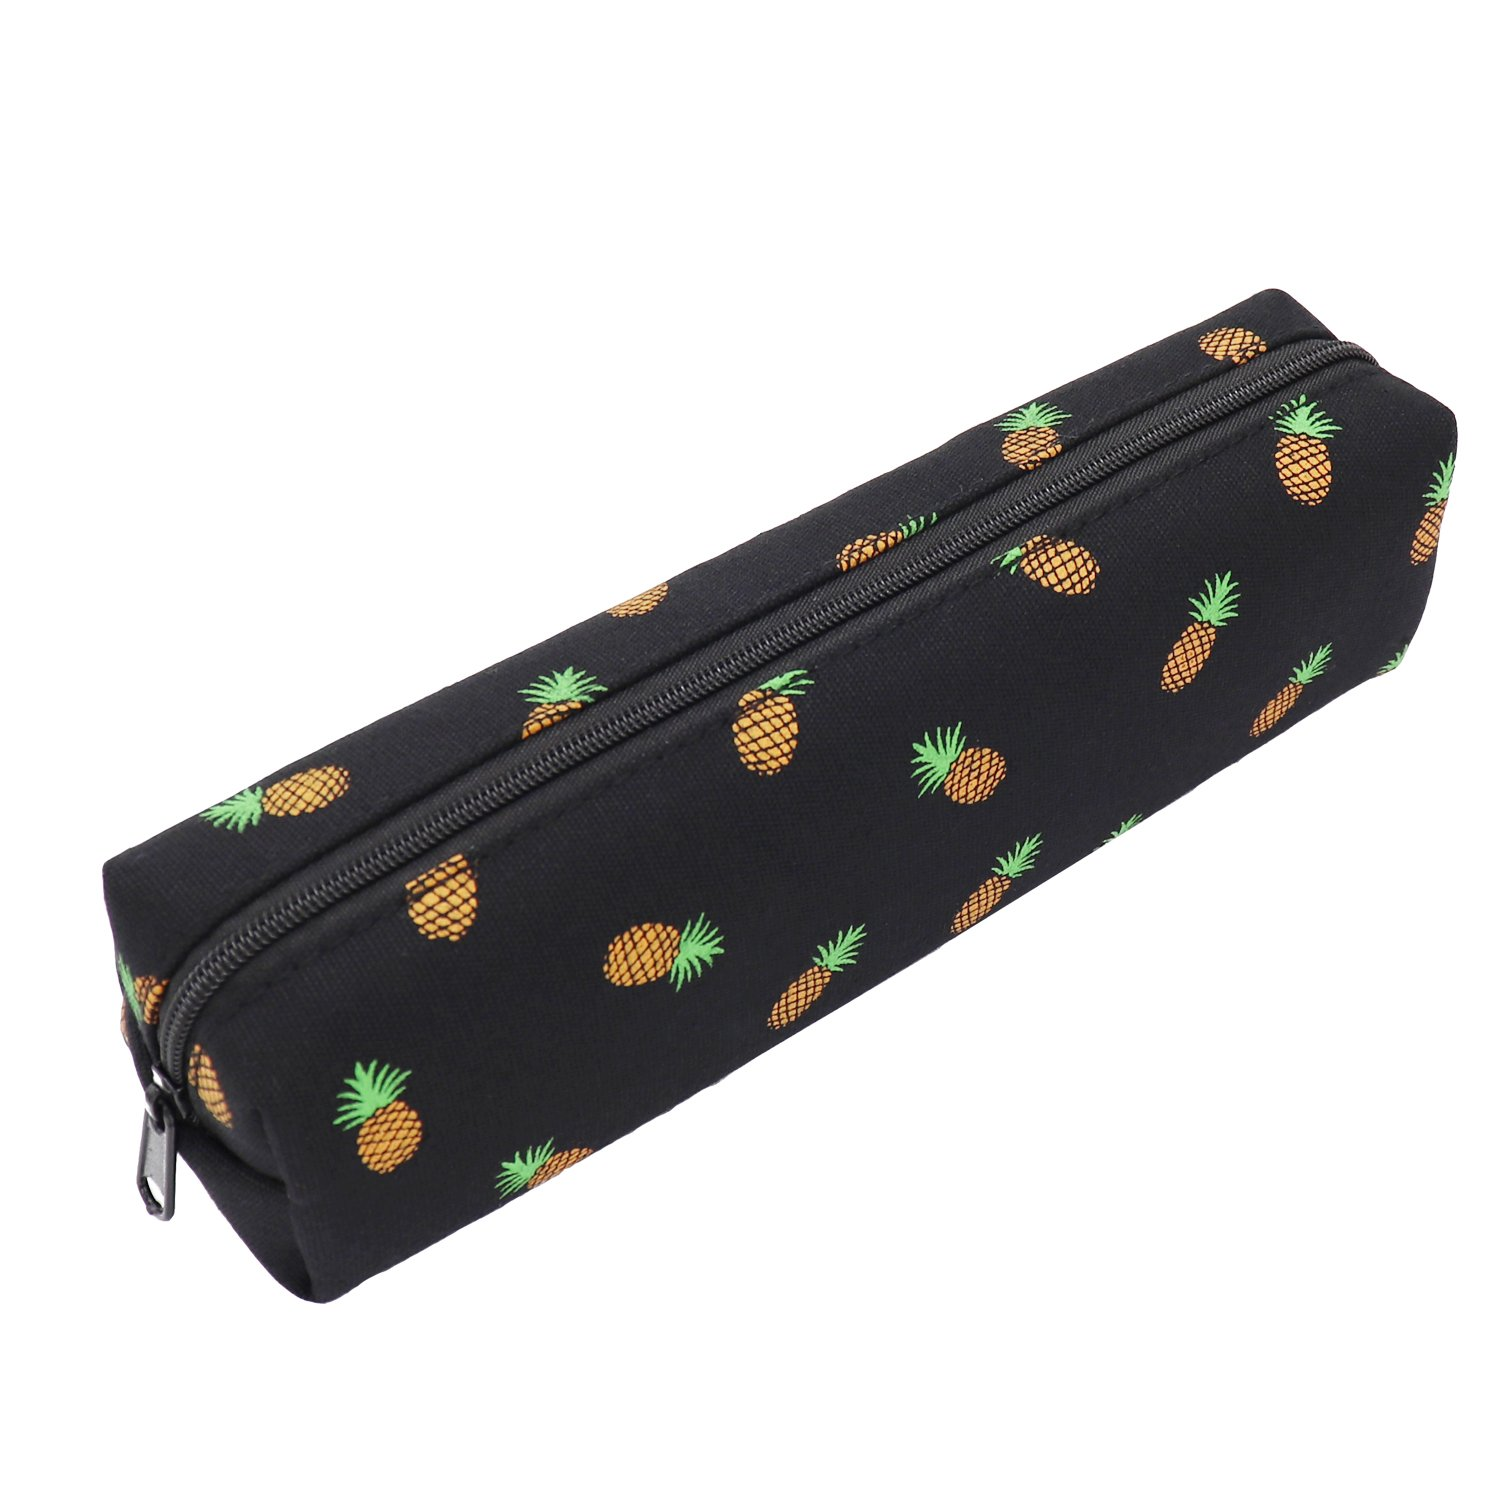 Pineapple Pencil Case Zipper Canvas Pen Pouch Bag for Women Girls Kids Teens (Black)